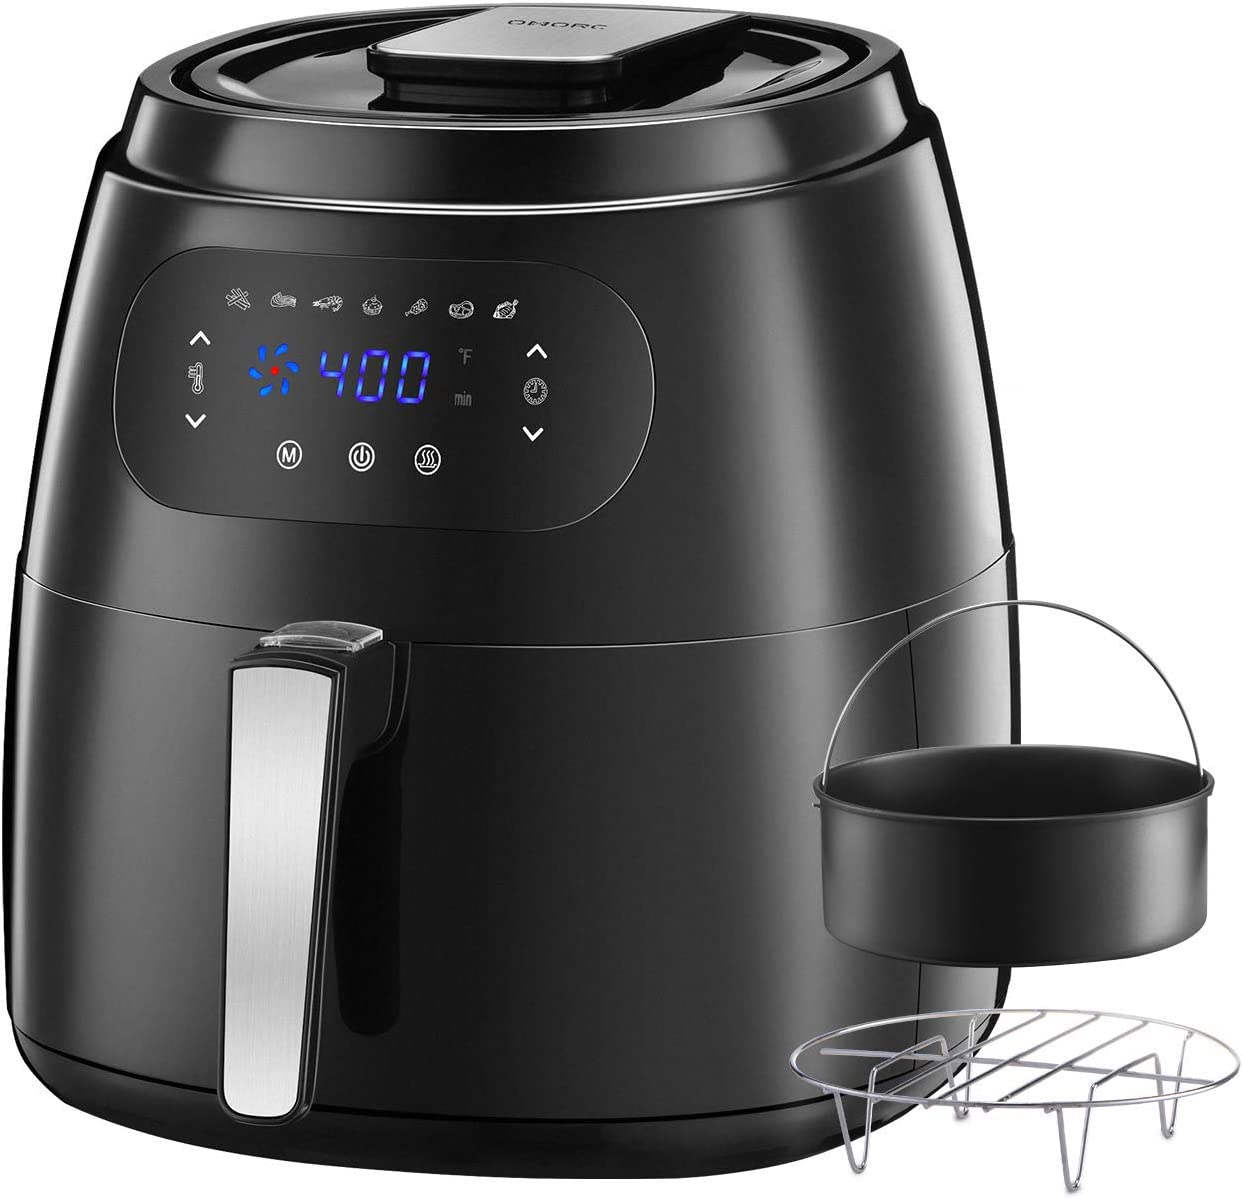 OMORC 7.6QT Large Air Fryer w/Capacity Expansion Rack & Cake Pan, 1700W Air Fryer XXL Oven w/Digital Screen, Hot Air Fryer Cooker w/Keep Warm Function, 8-15 modes, Recipe(ME181)